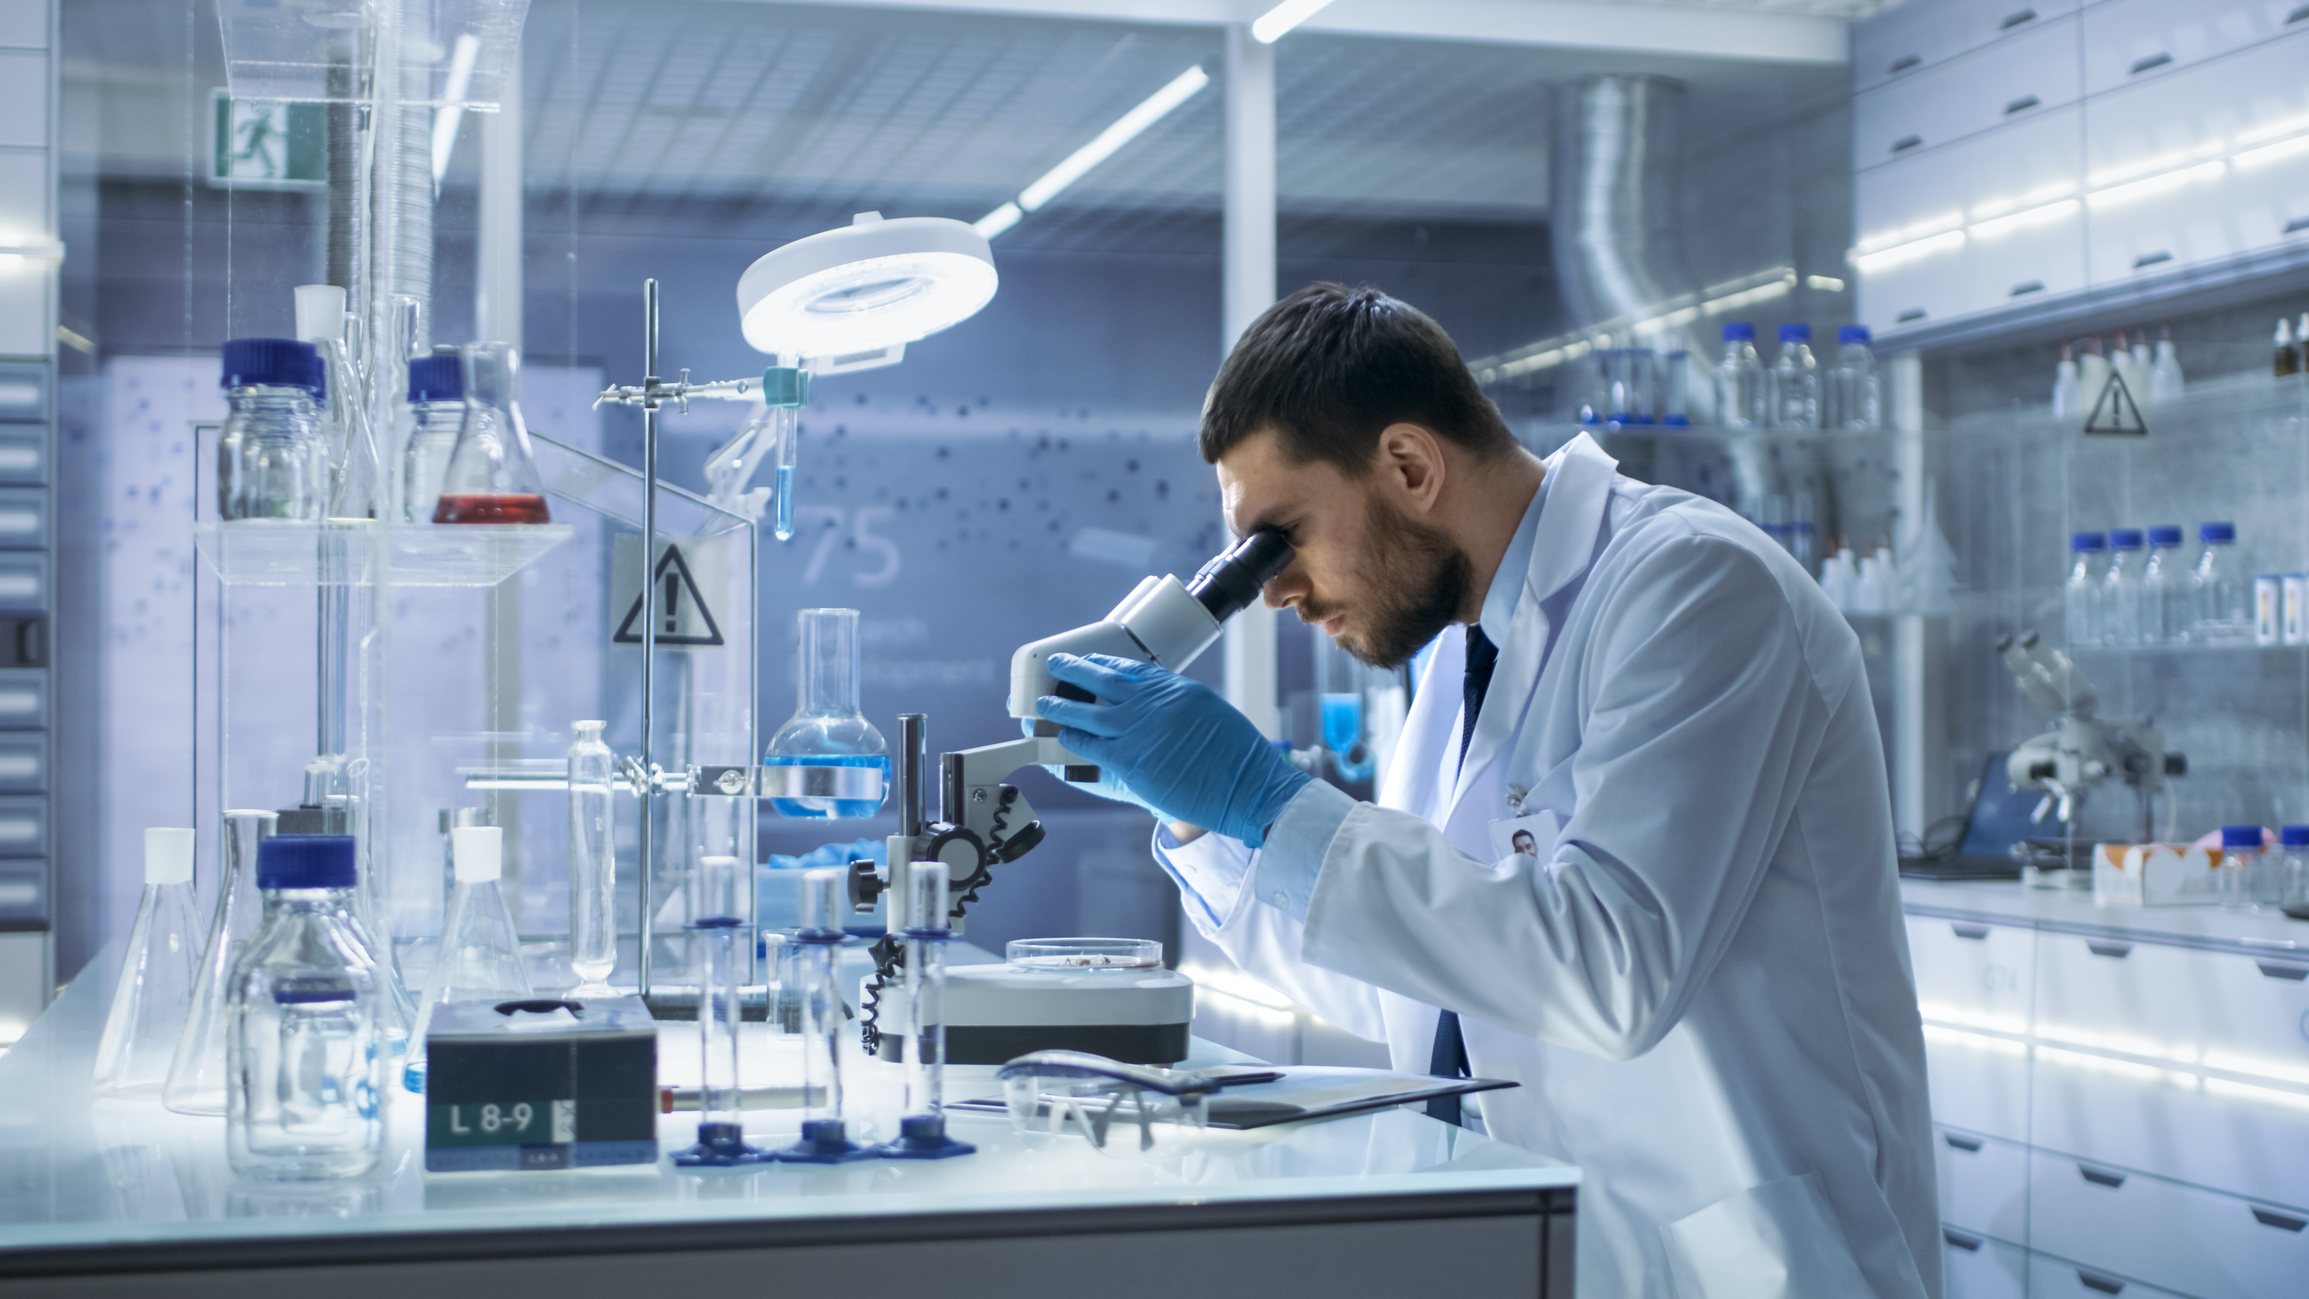 Research Scientist Looks into Microscope. He's Conducts Experiments in Modern Laboratory.